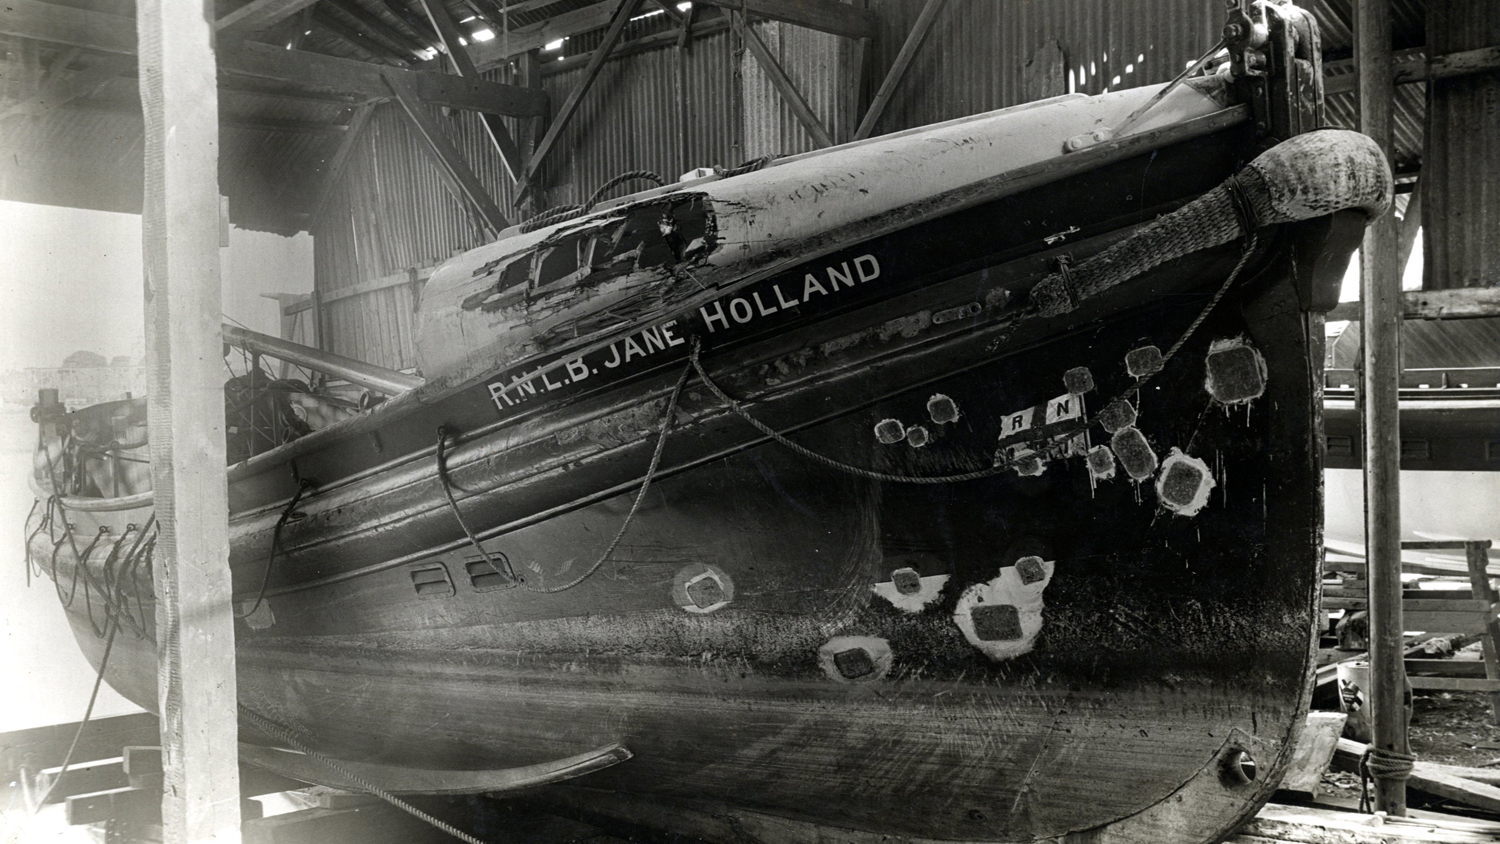 1940 war damage on Eastbourne lifeboat Jane Holland